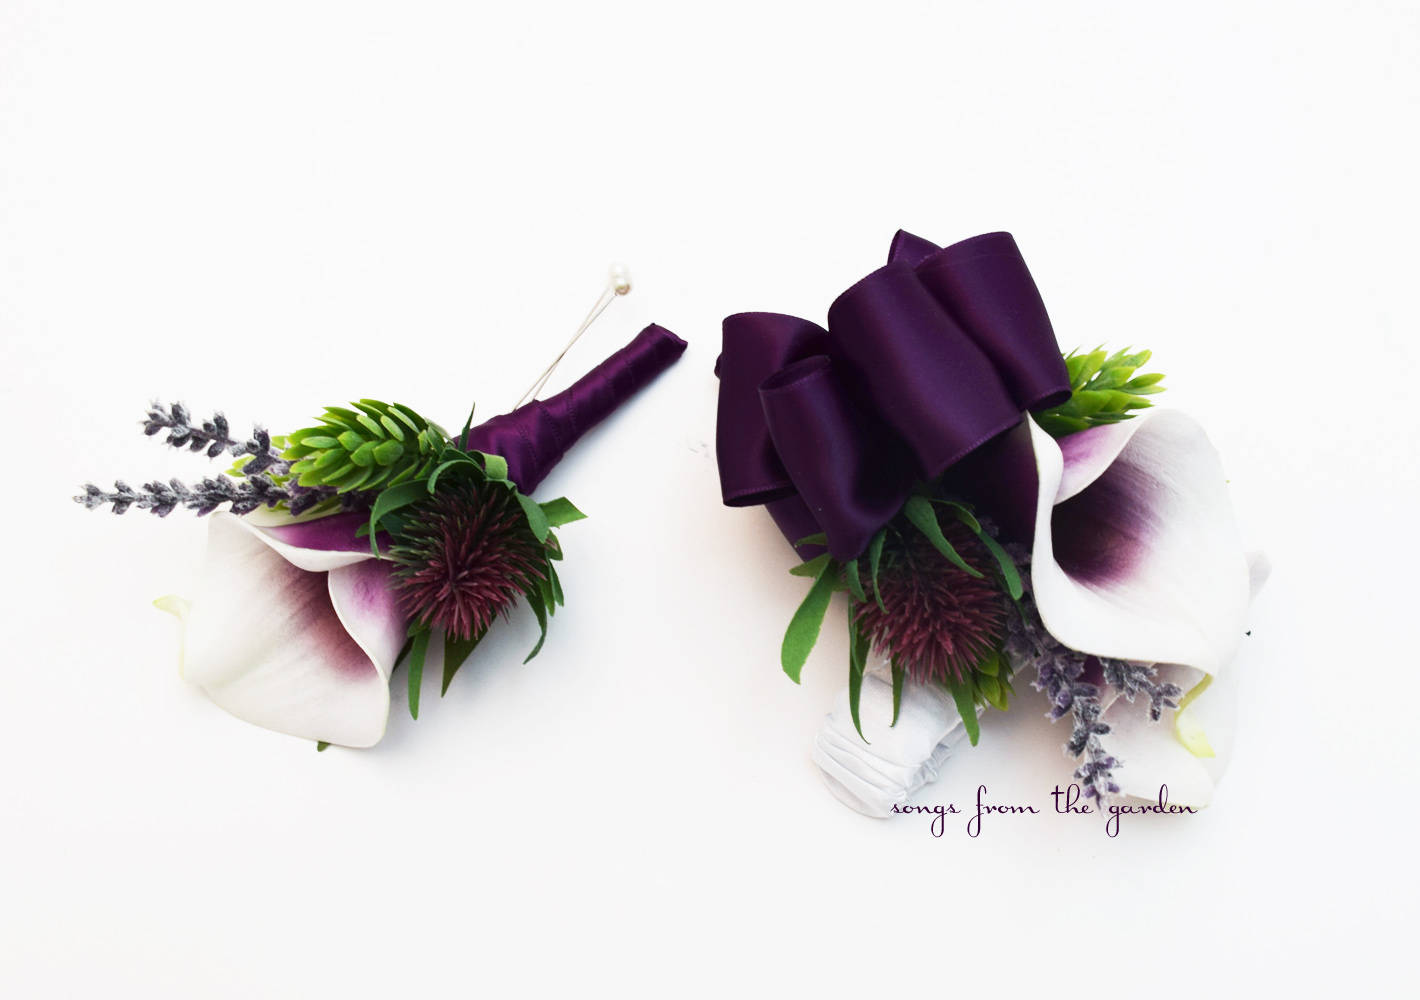 Picasso Calla and Thistle Boutonniere and Corsage  - Wedding Prom Homecoming Boutonniere and Corsage